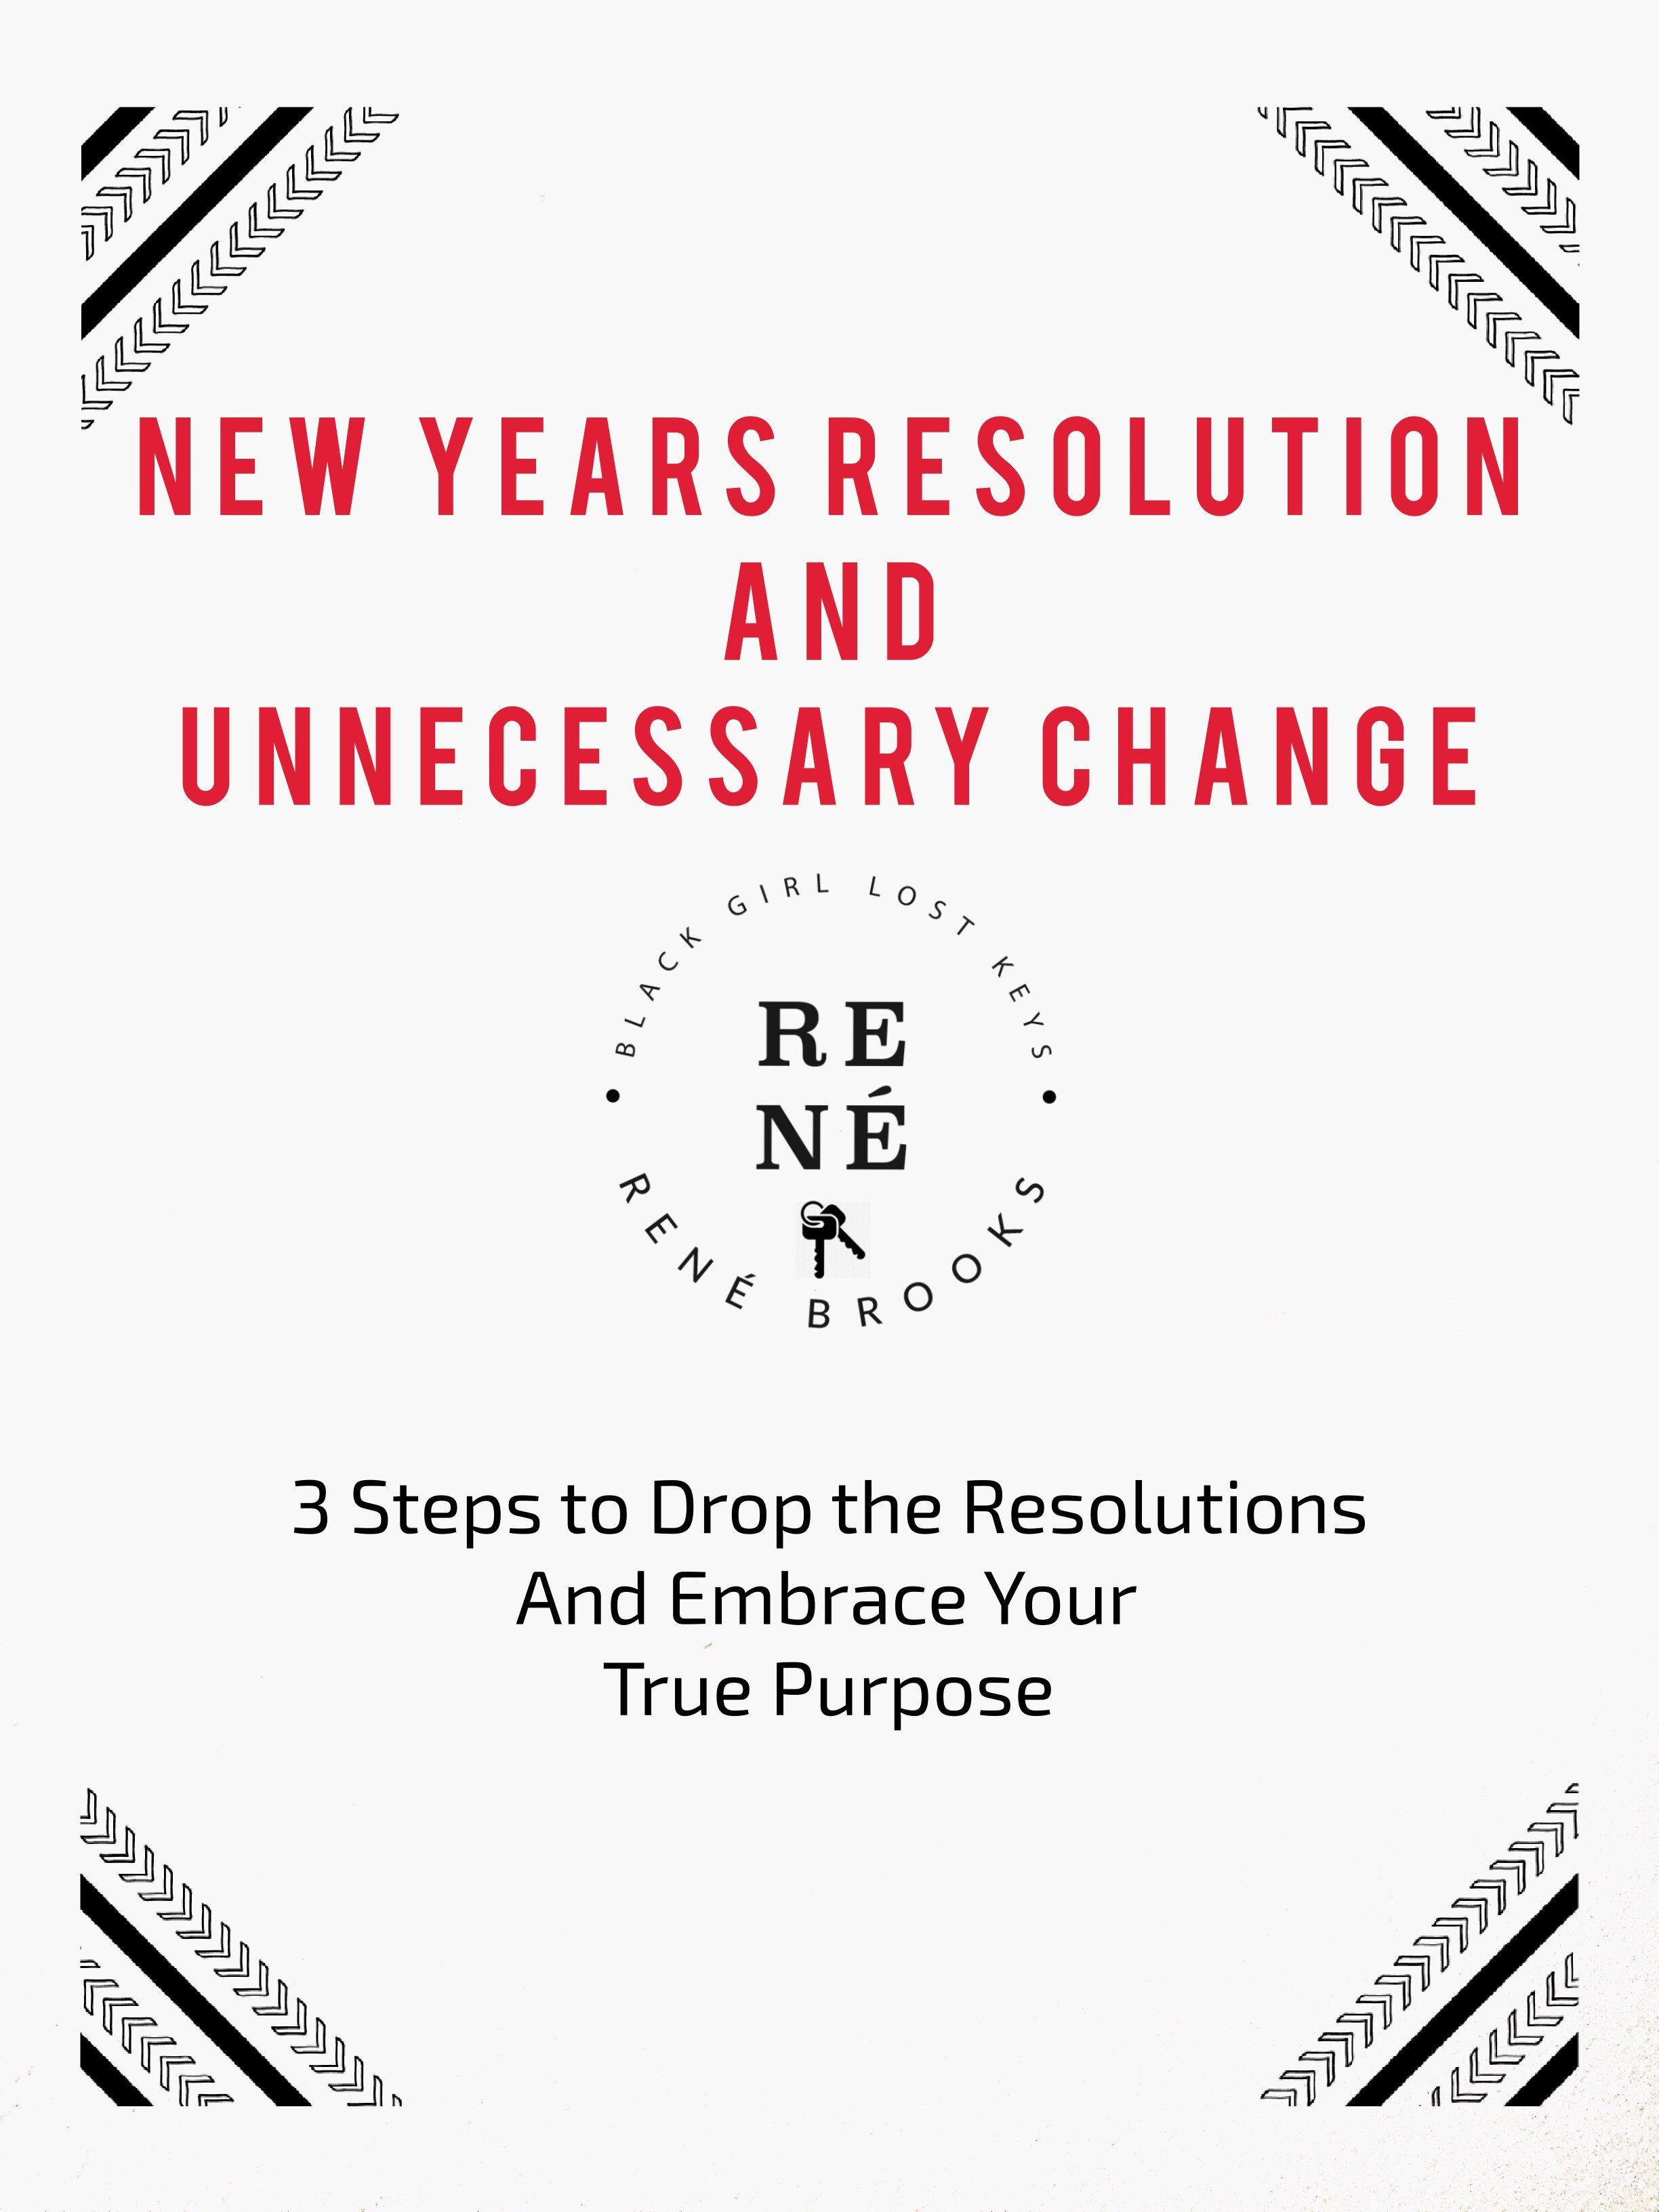 New Years Resolution and Unnecessary Change